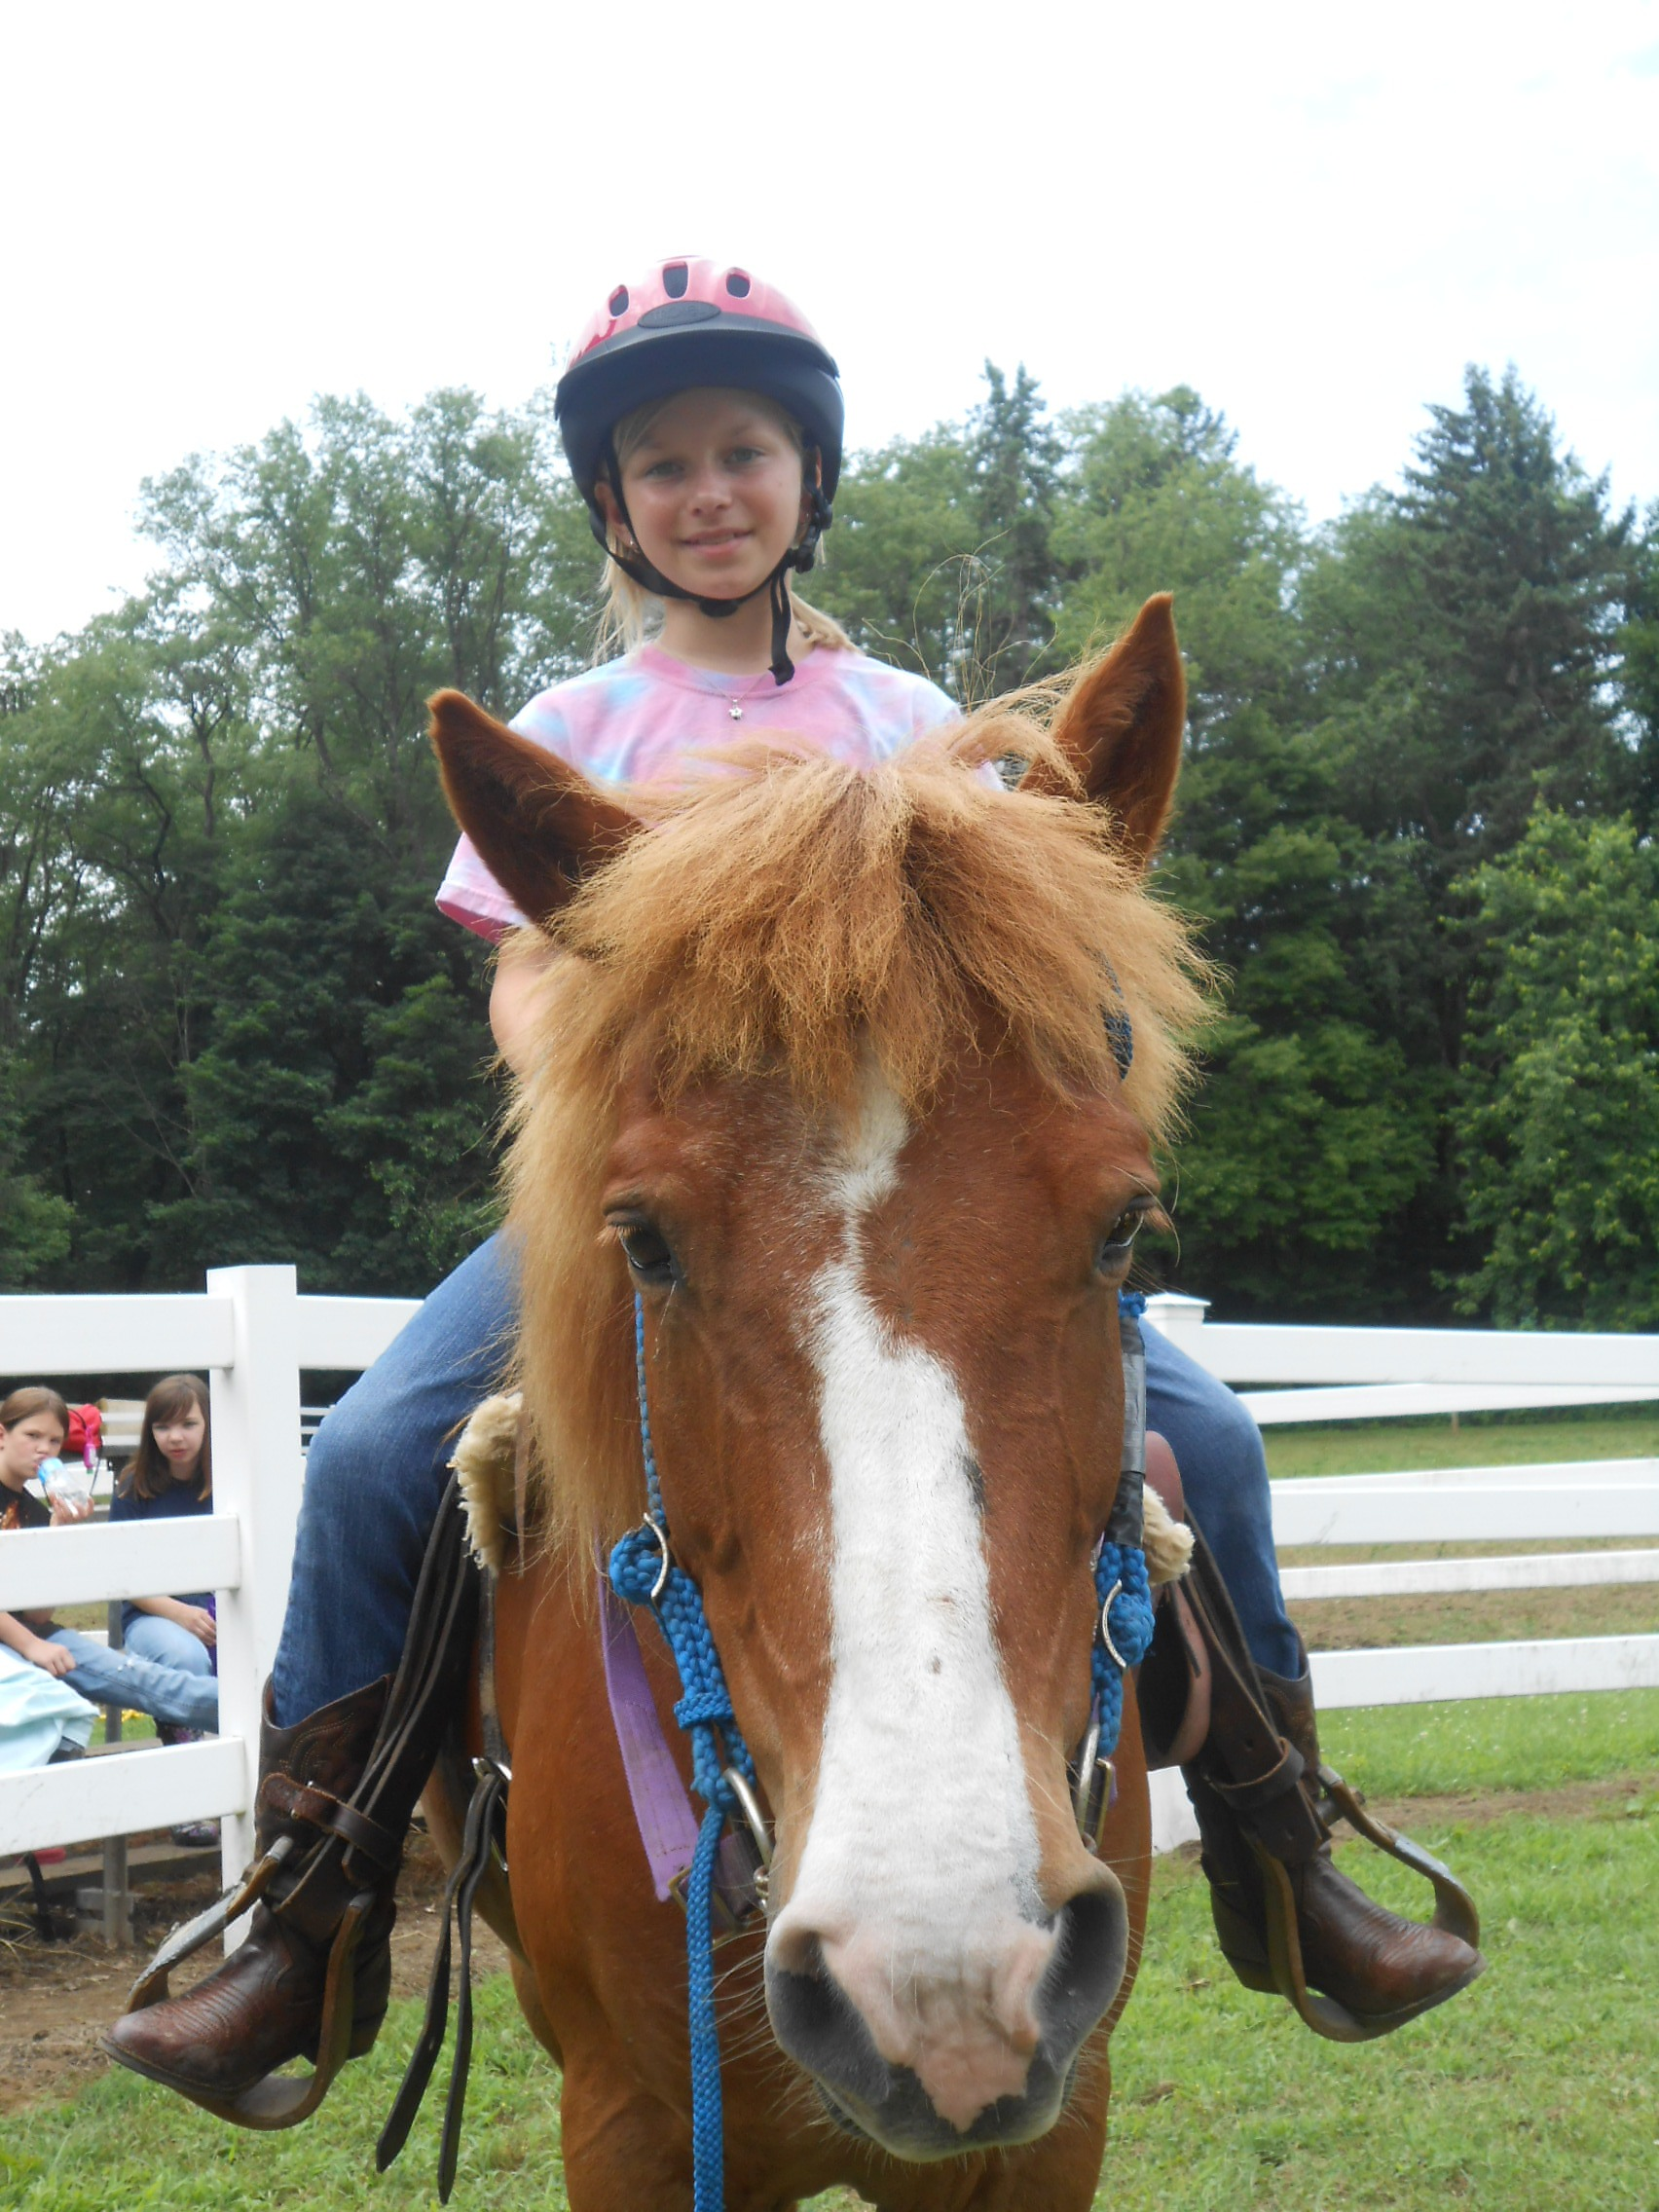 A Girl Scout Junior rides as part of the rapidly growing equestrian program at Camp Skymeadow outside Pittsburgh. Photo by Lisa Shade, Girl Scouts Western Pennsylvania.